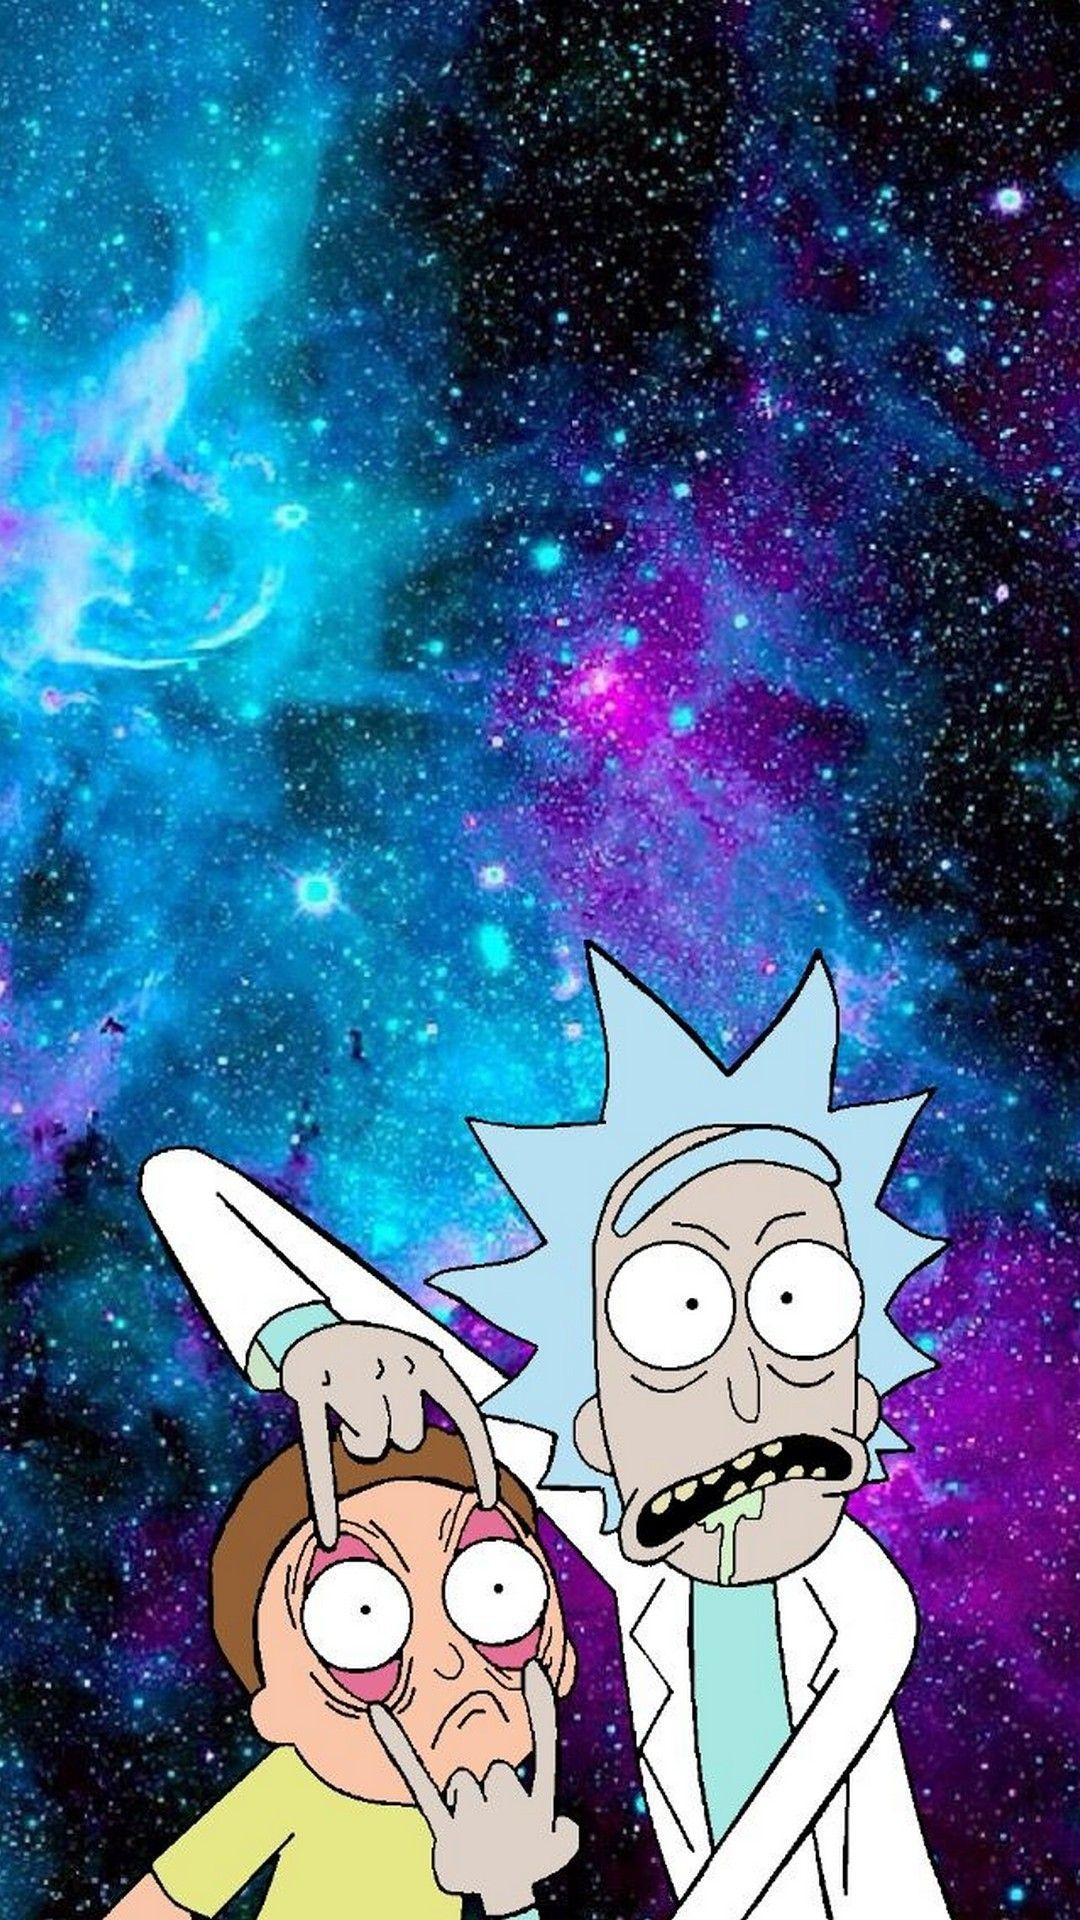 Anime Wallpapers Backgrounds Desktop 4k In 2020 Iphone Wallpaper Rick And Morty Rick And Morty Poster Rick And Morty Drawing